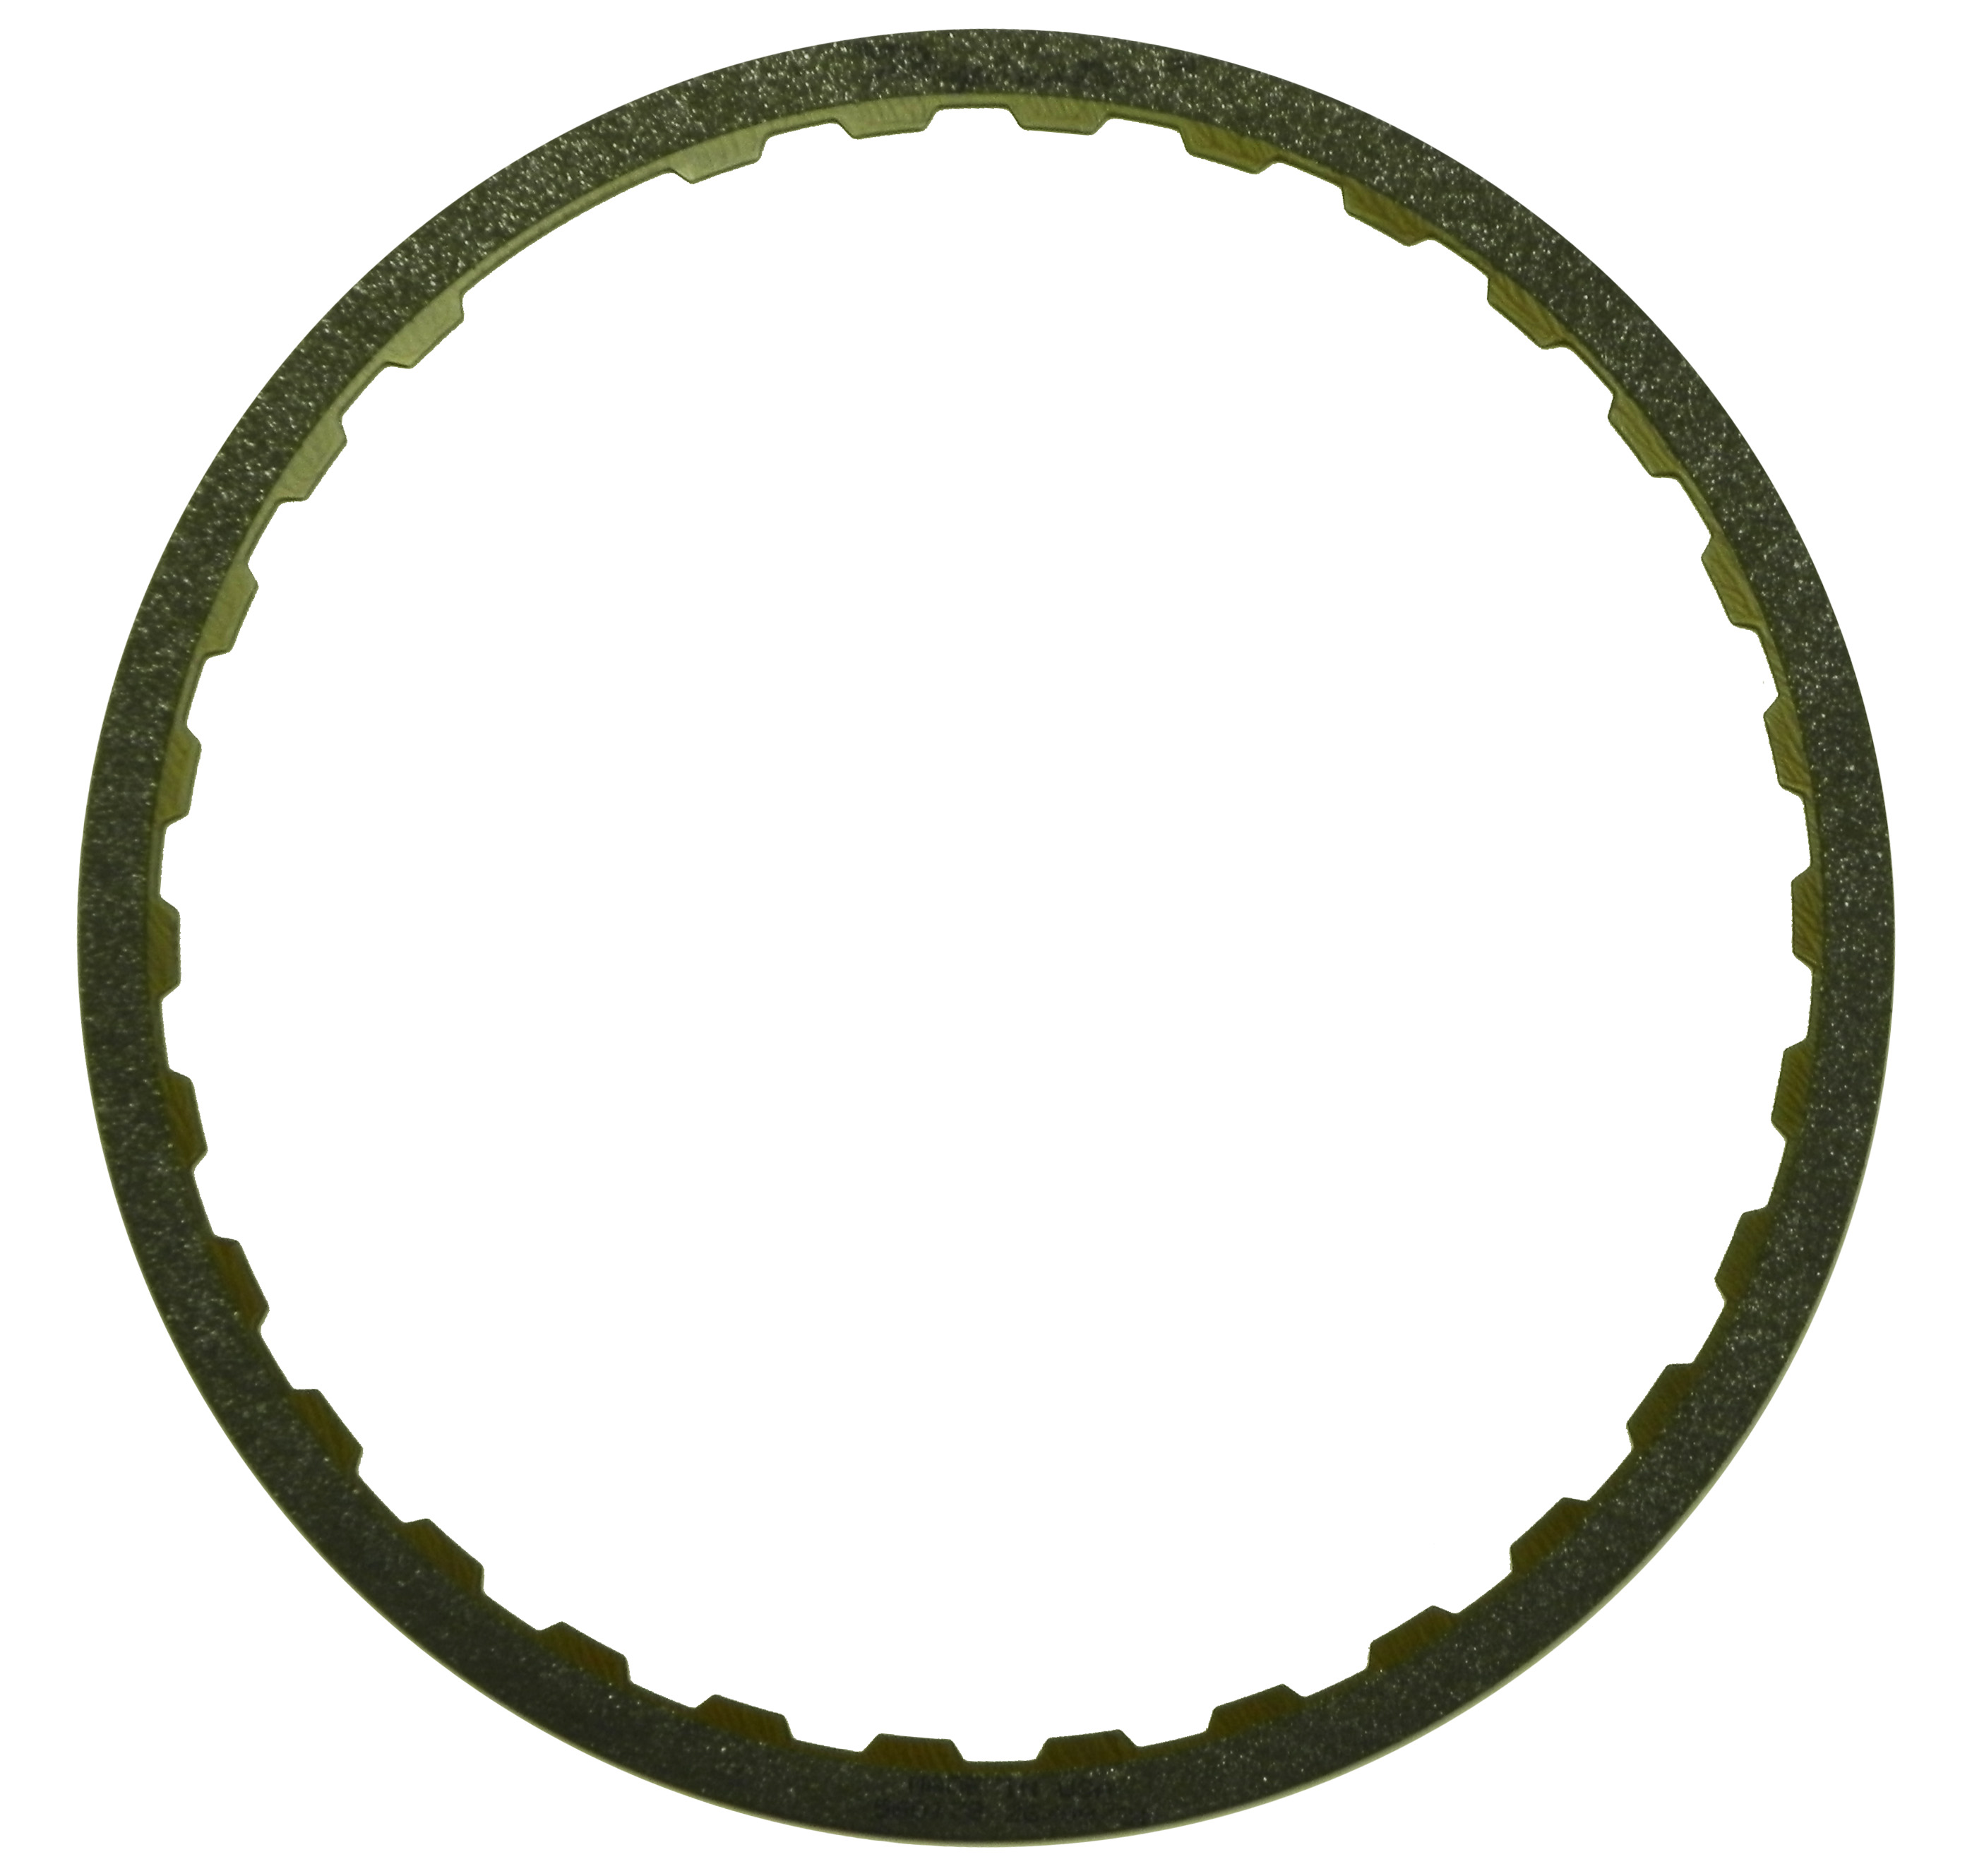 R560178 | 1975-ON Friction Clutch Plate Graphitic Low, Reverse Graphitic